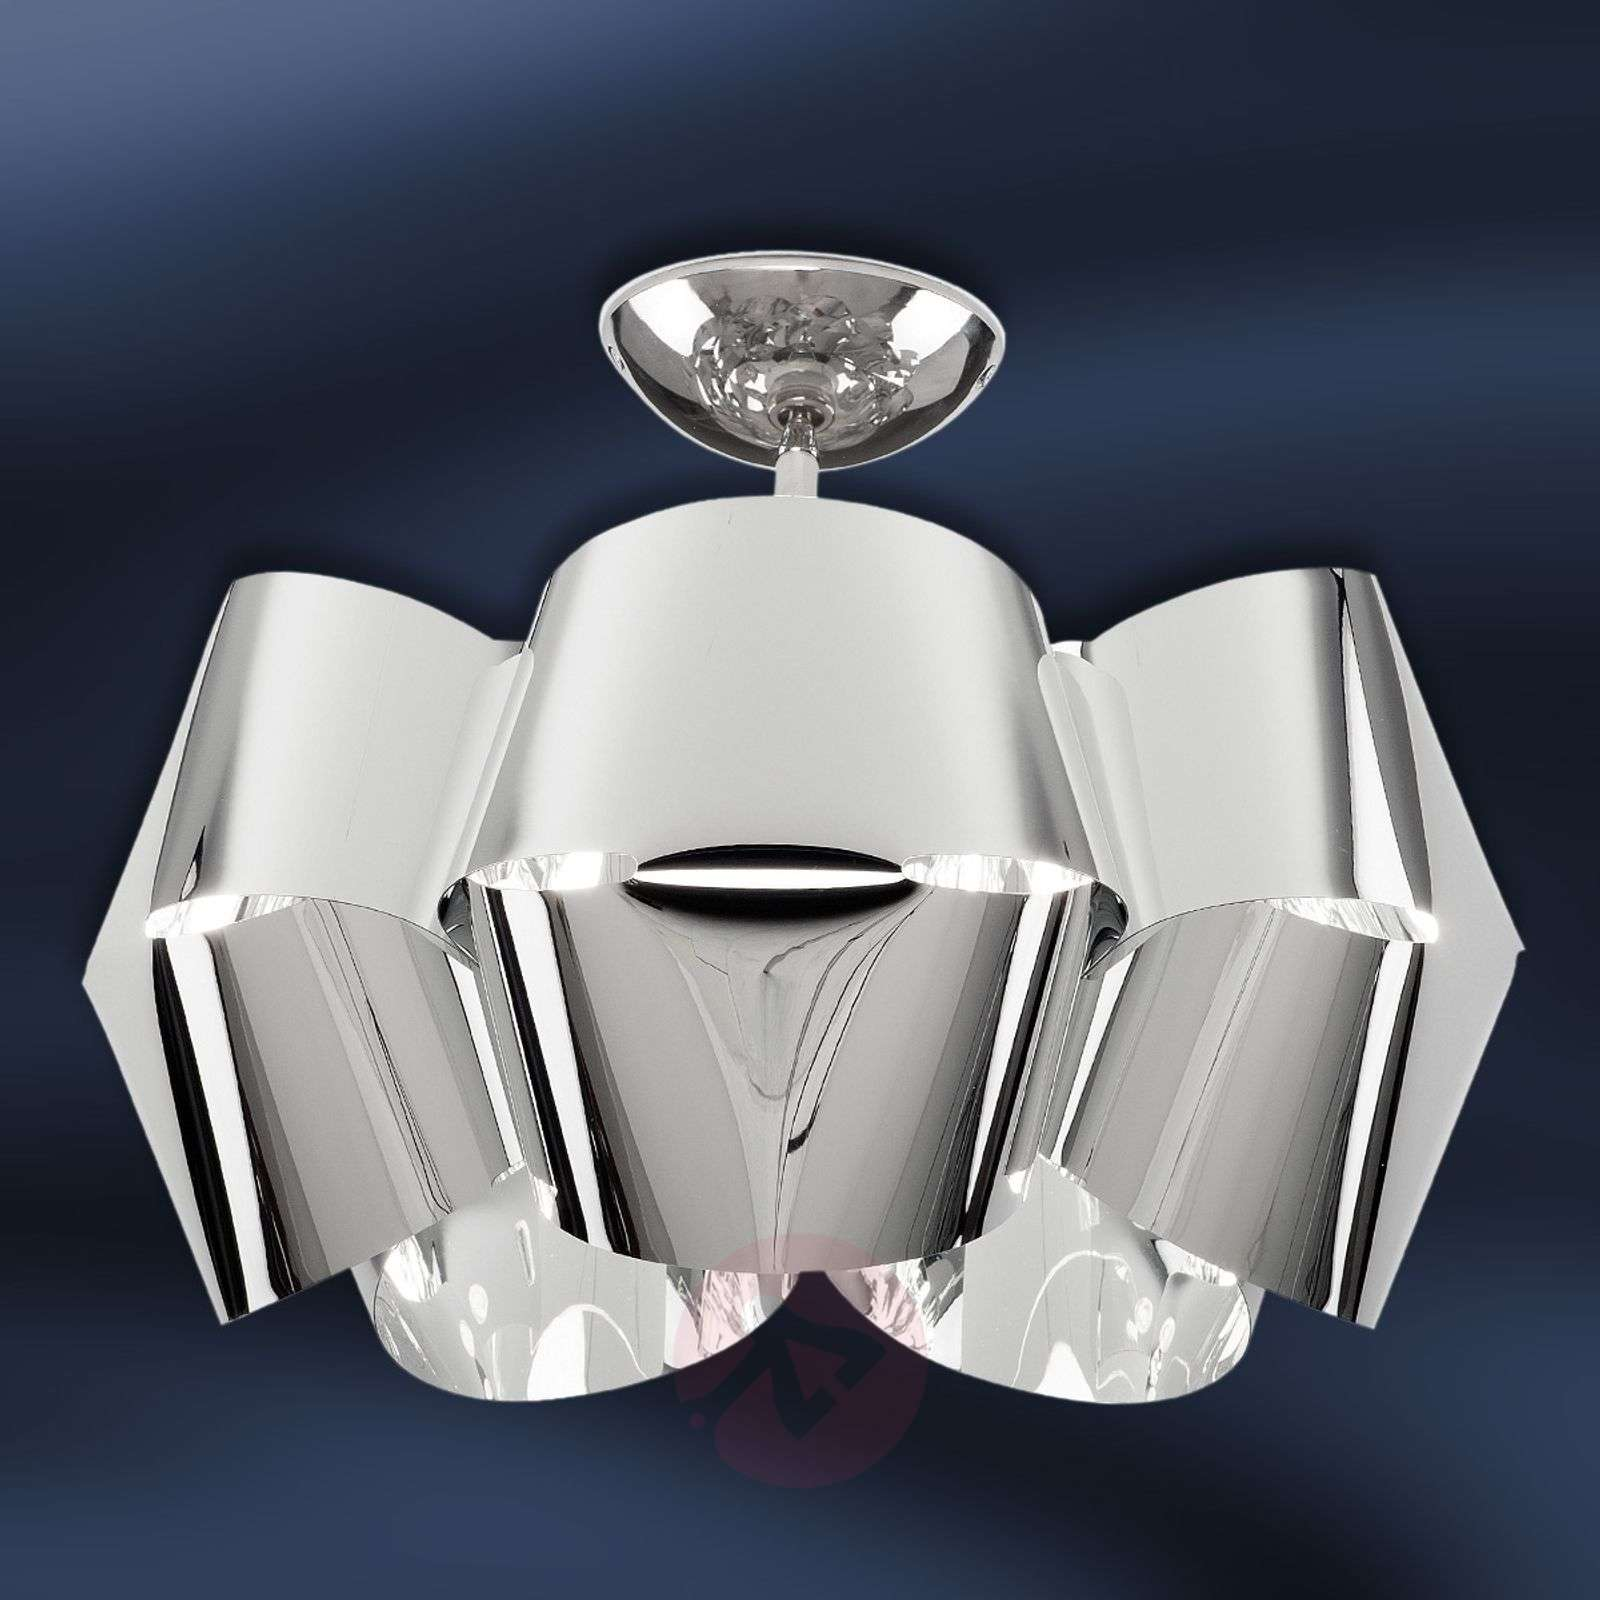 Chrome-coloured ceiling light Sky Mini Alien_1056075_1